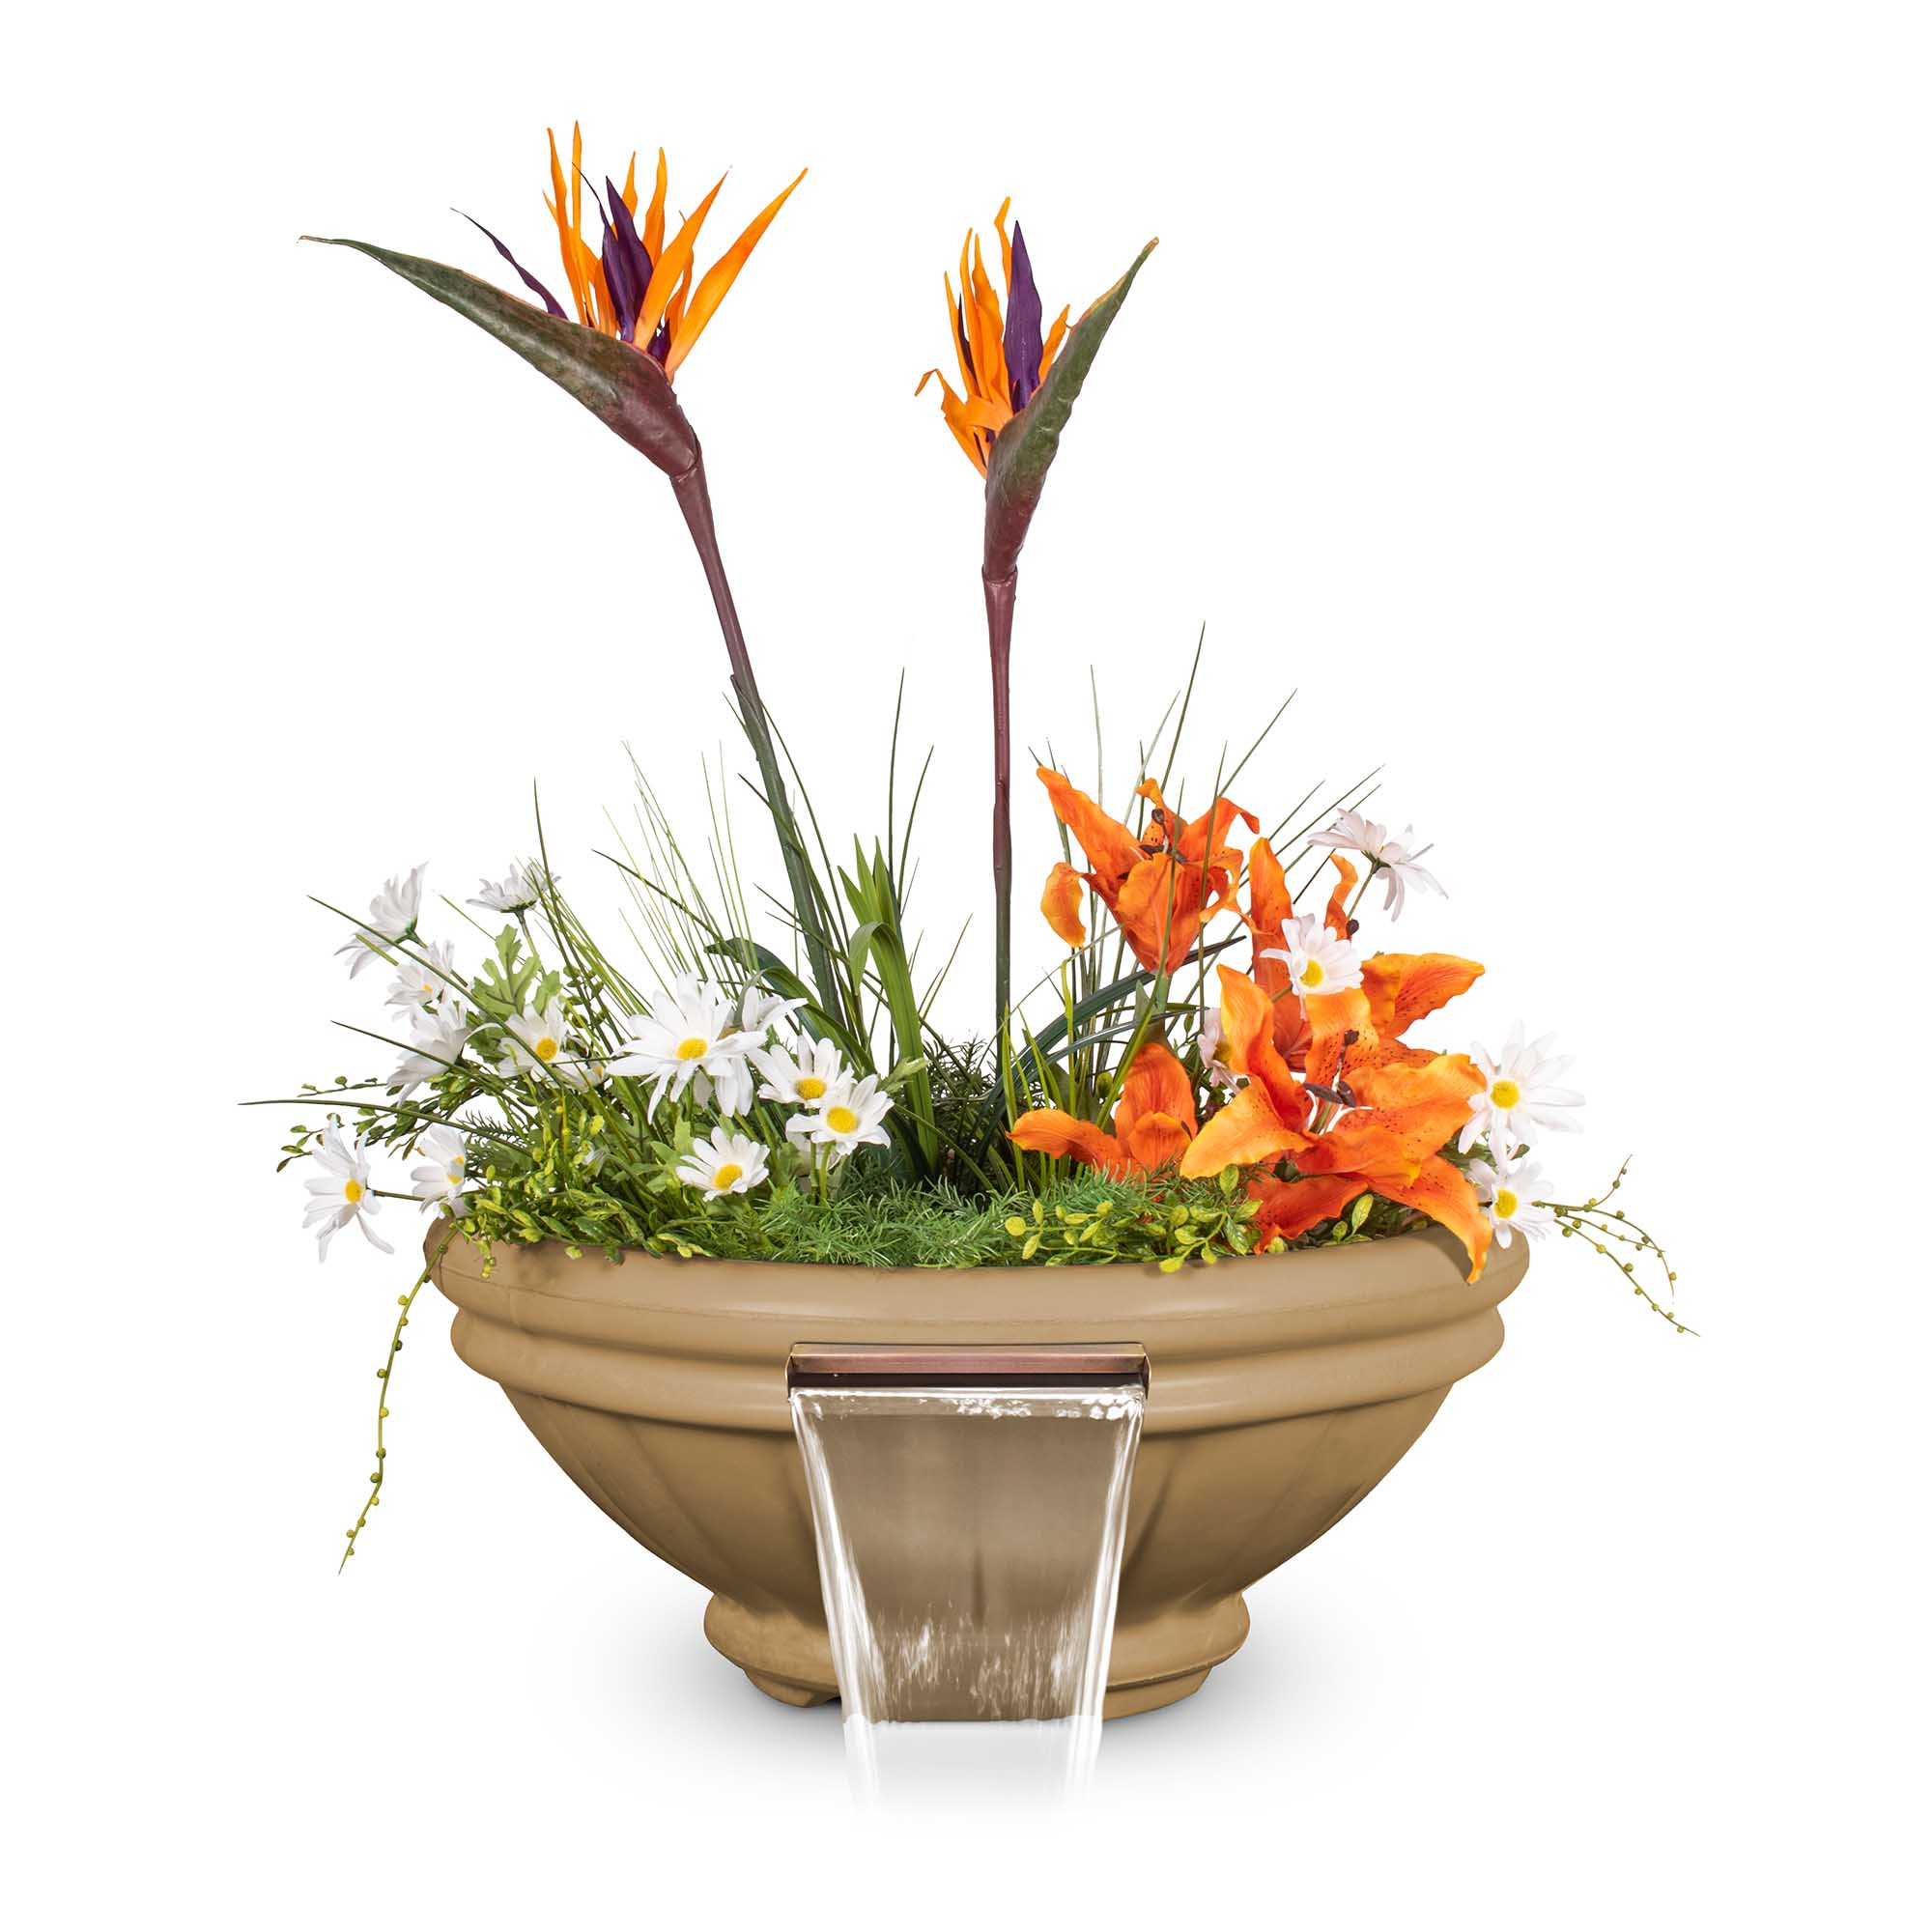 Roma GFRC Planter Water Bowl - Brown